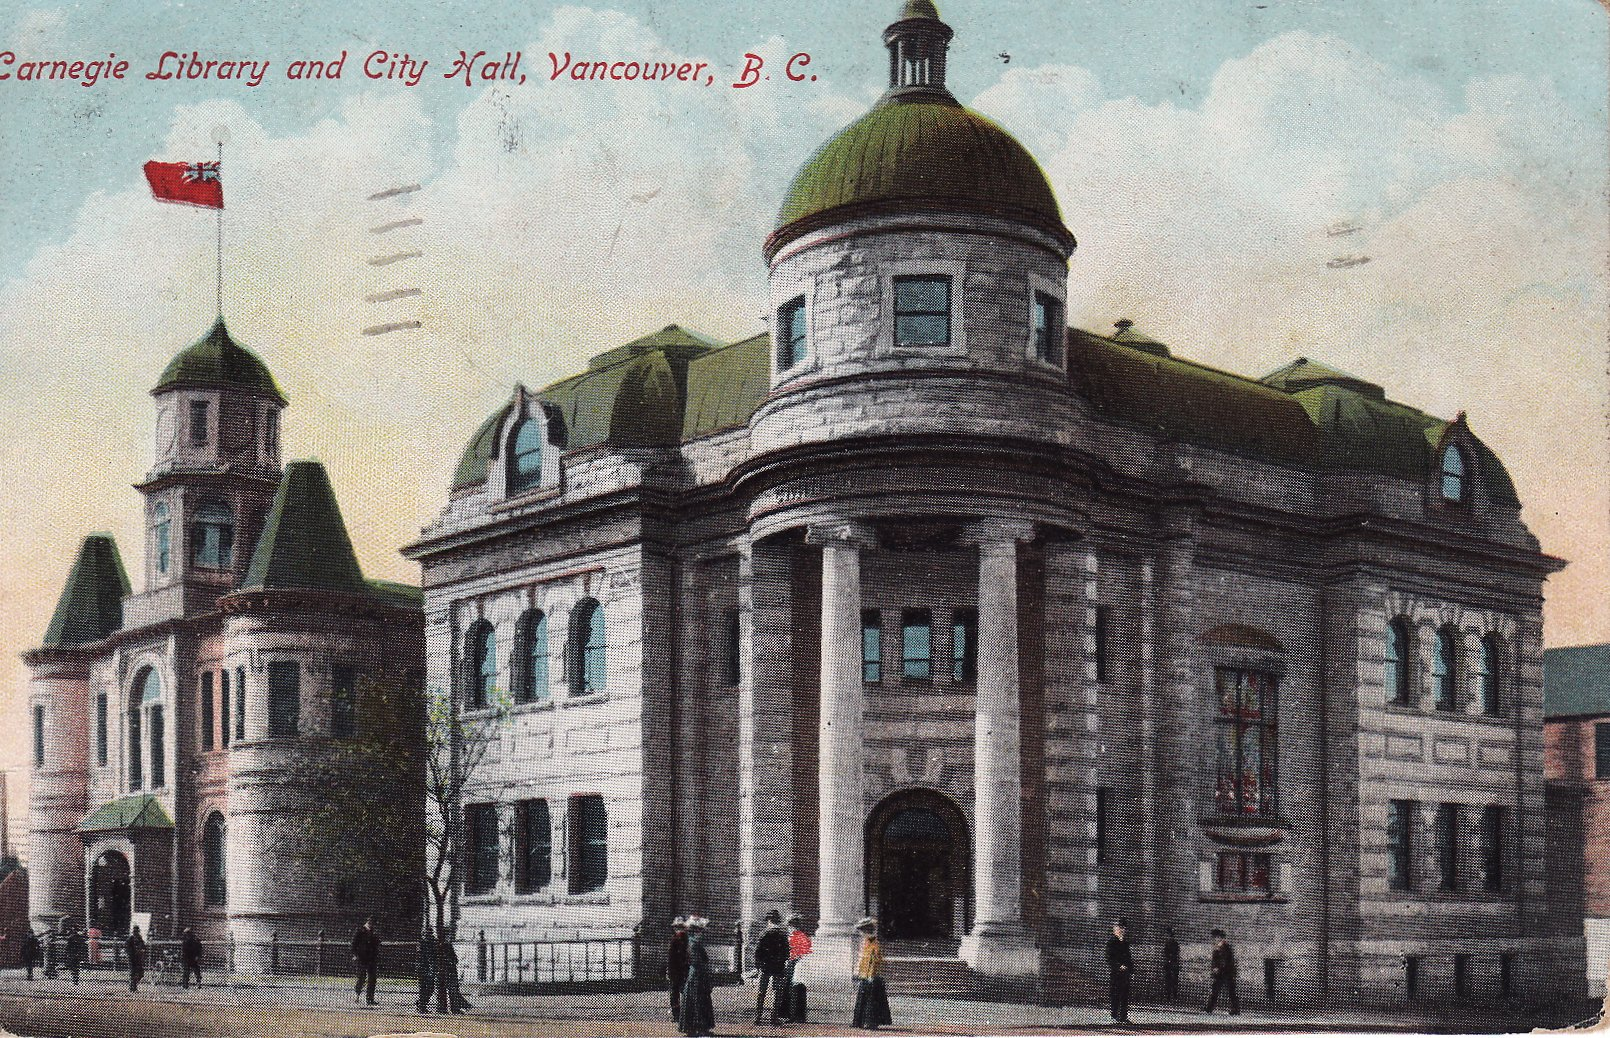 Postcard of two grand stone buildings. One has the Red Ensign flying from the roof.